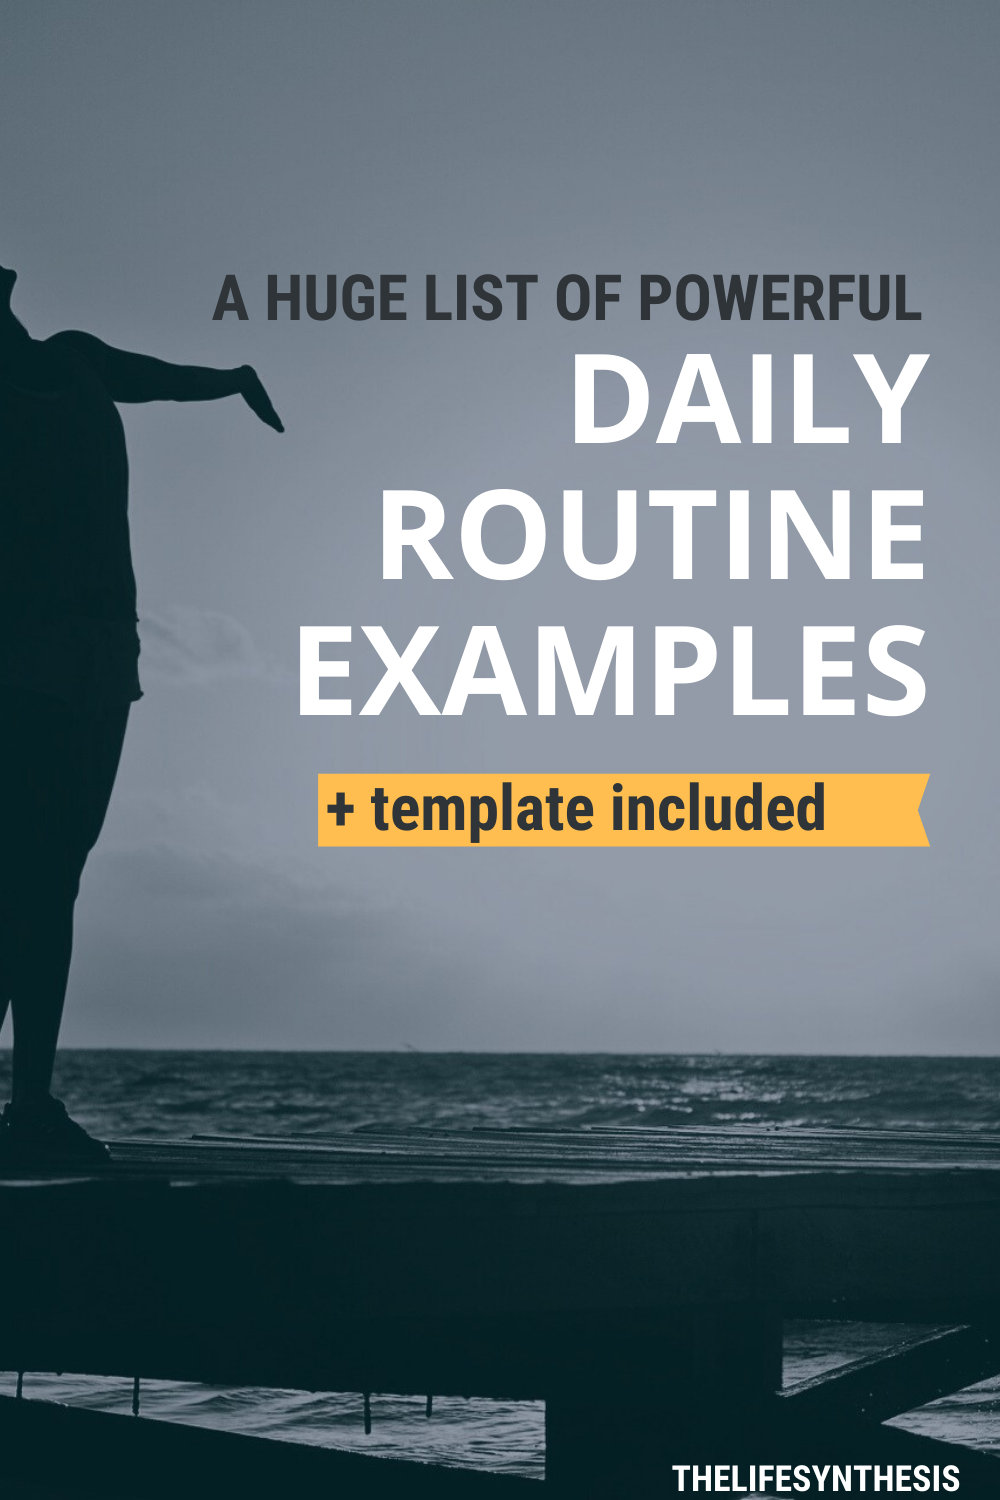 21 Daily Routine Examples You Need to Have